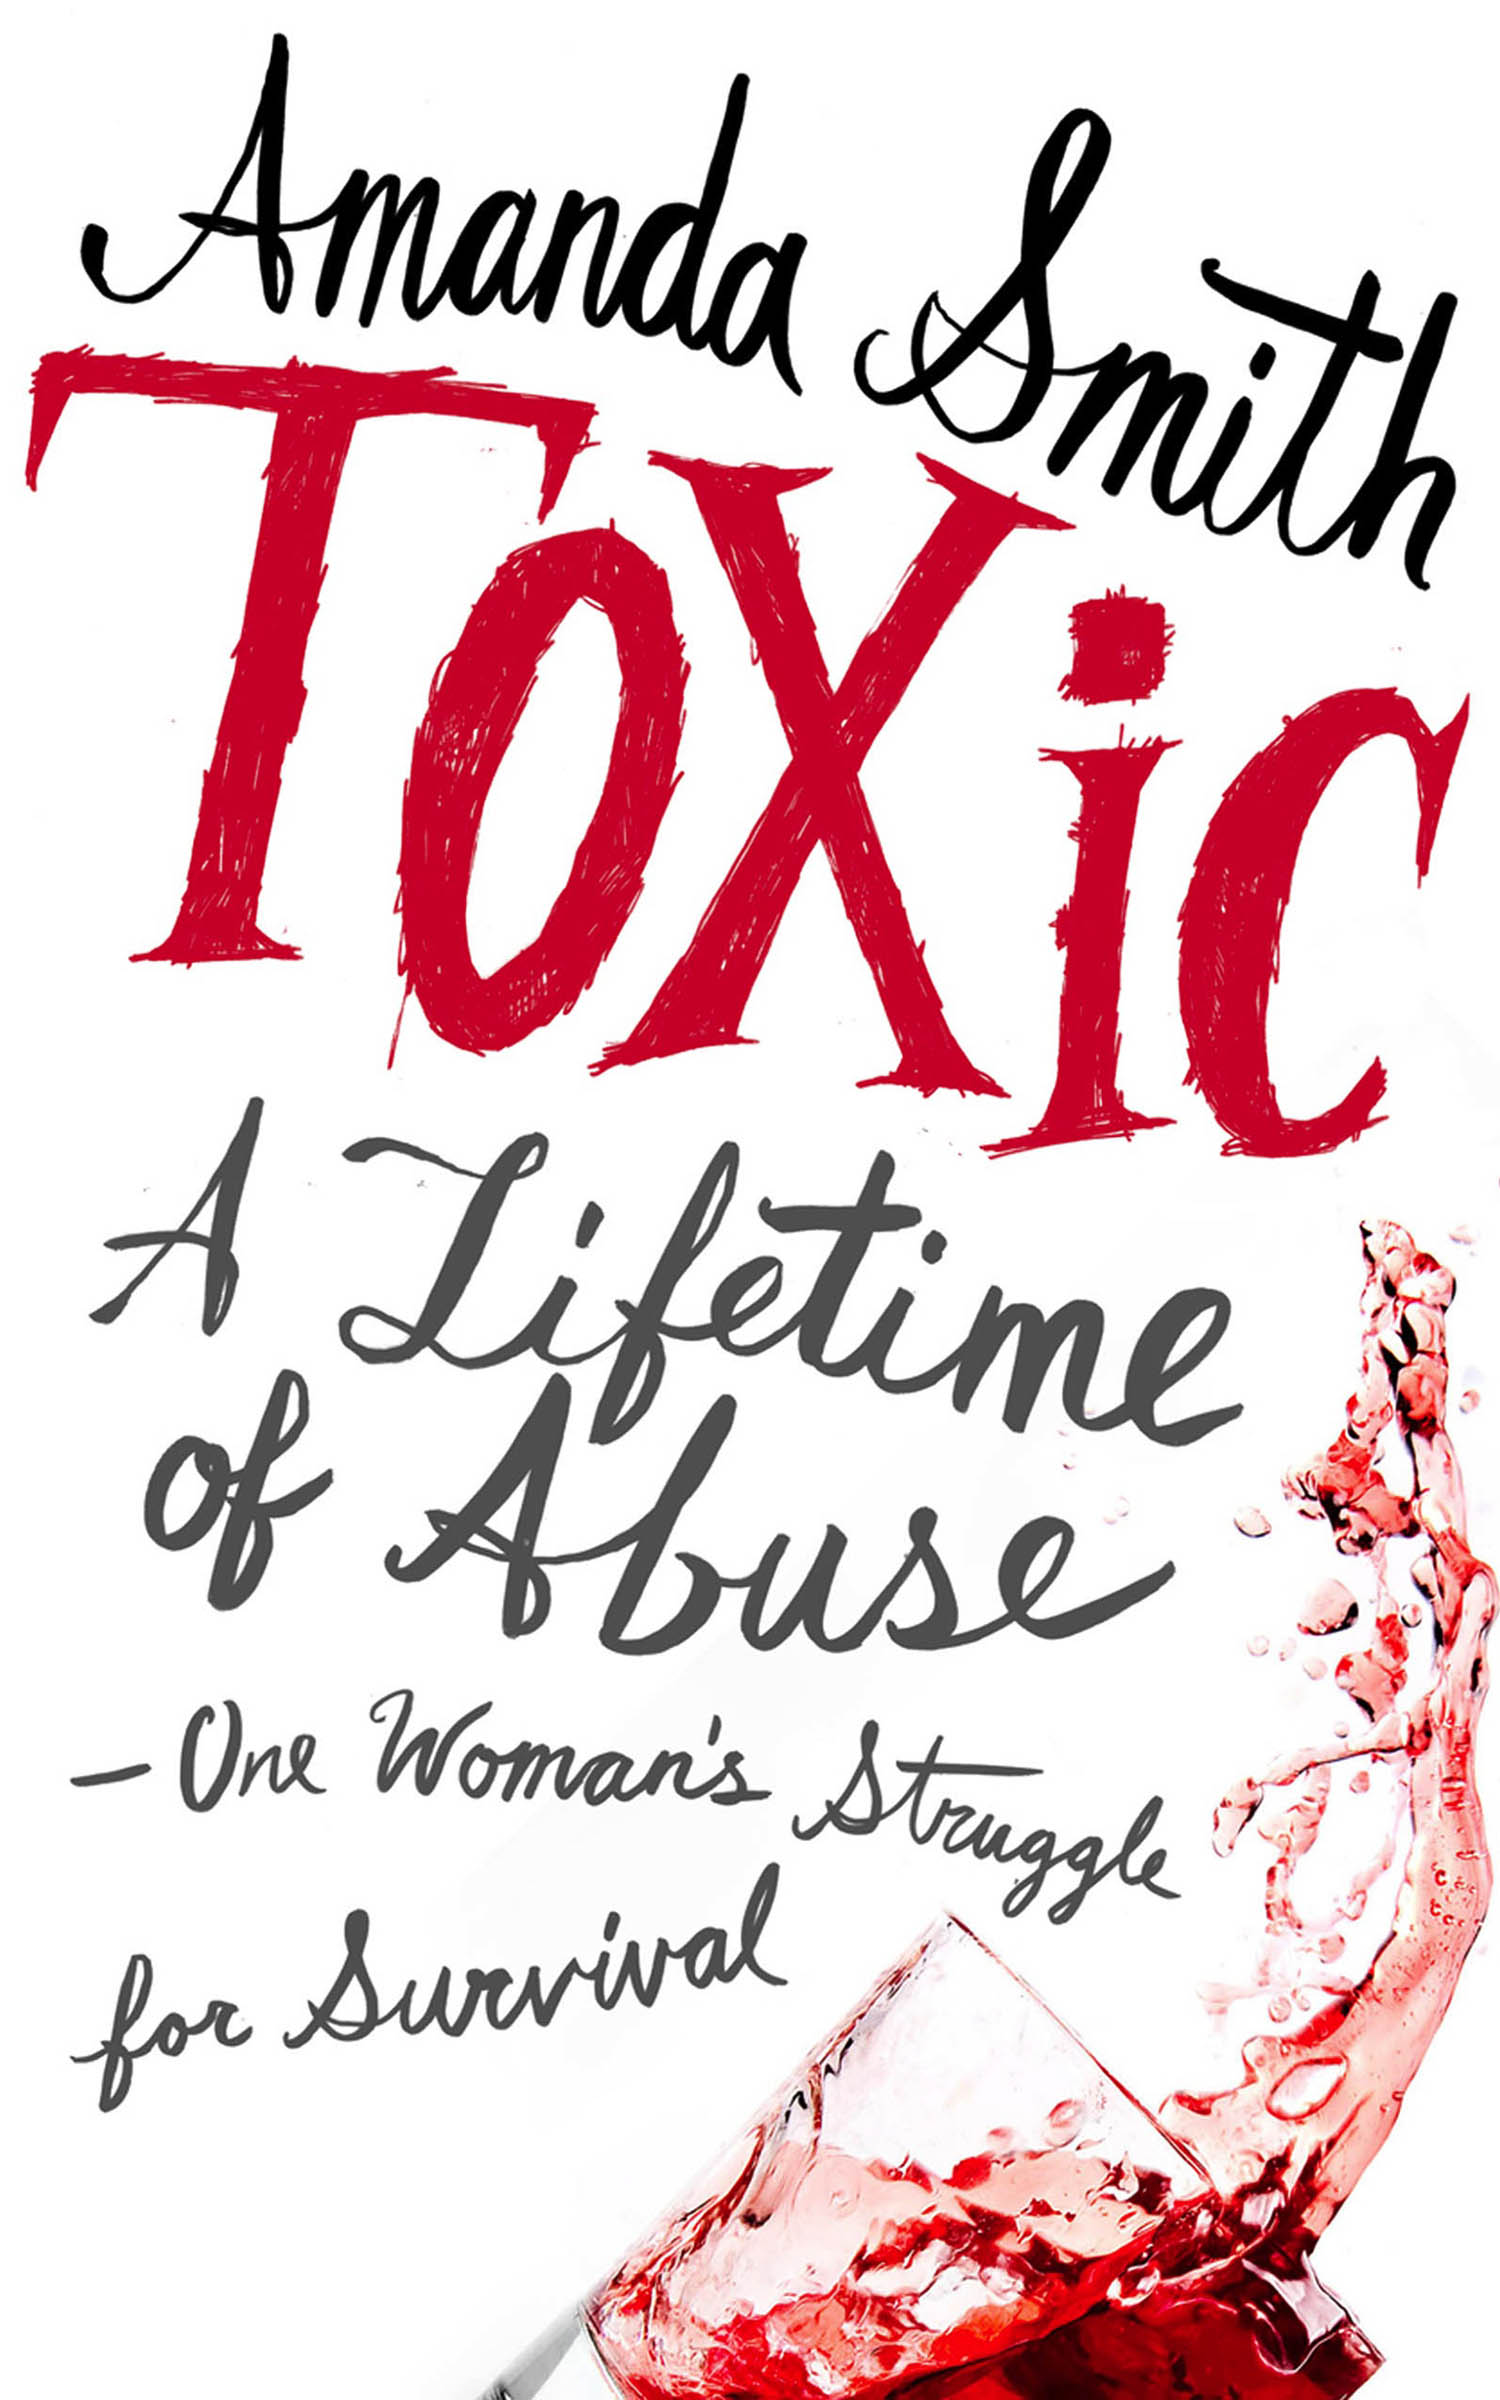 TOXIC lifetime of abuse